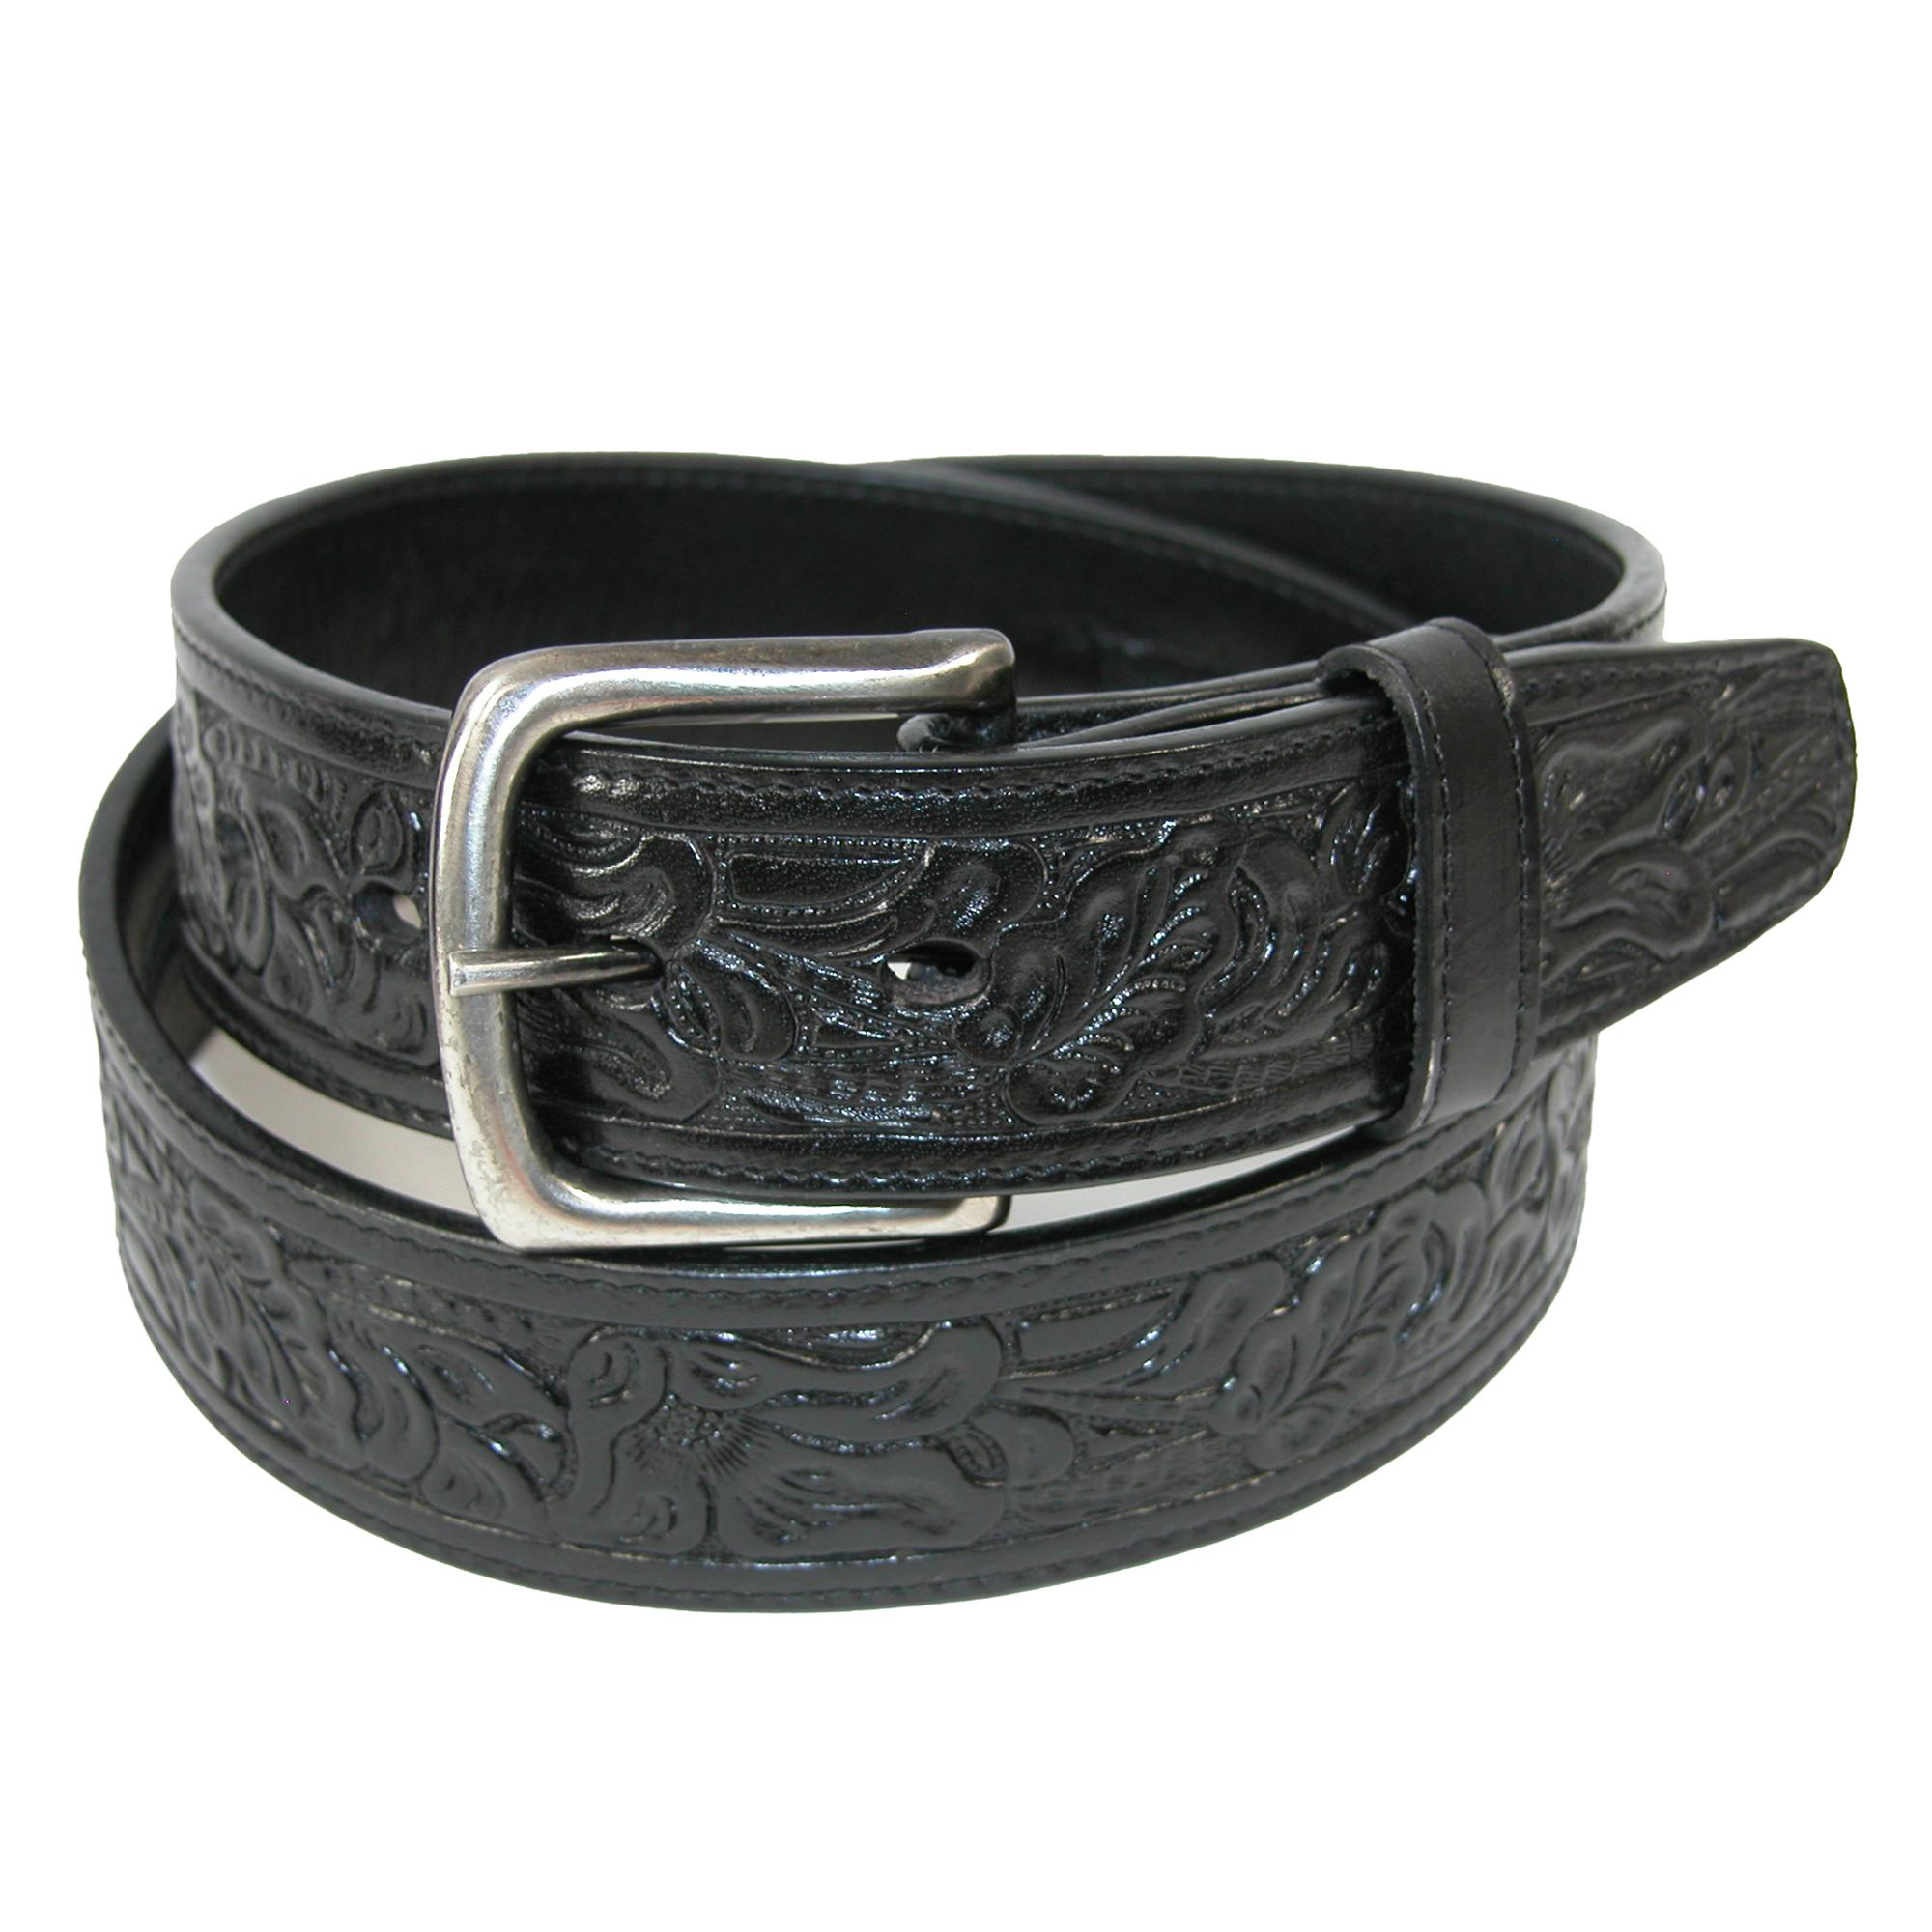 new ctm embossed leather money belt with removable buckle